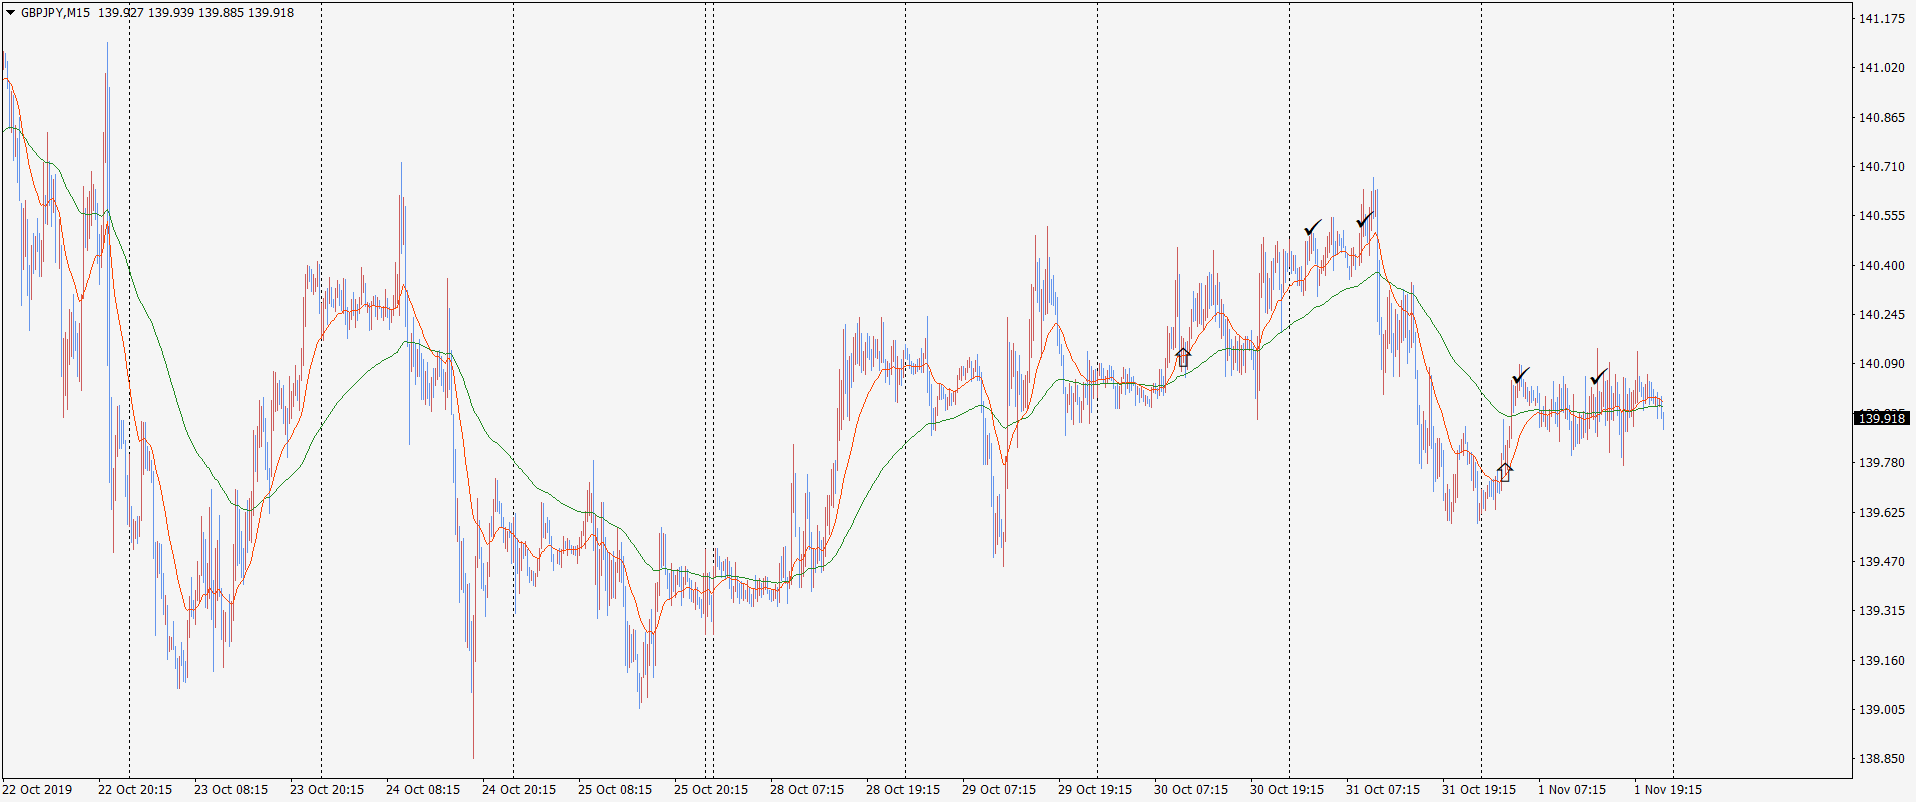 19-11-02-gbpjpy-m15-tradexfin-limited.png